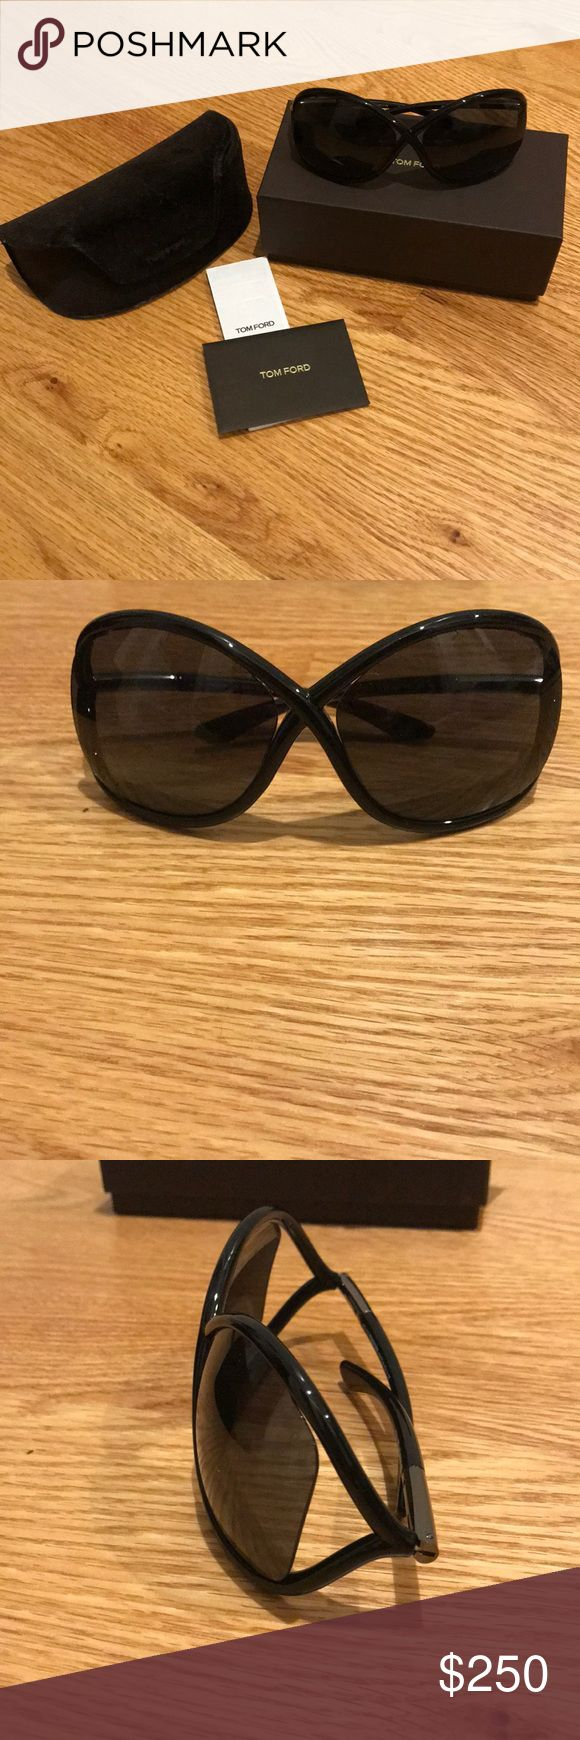 Tom Ford 🕶 Tom Ford 🕶   Brand new, never worn Tom Ford Whitney Sunglasses. Black. With original case, packaging, documents. Tom Ford Accessories Sunglasses